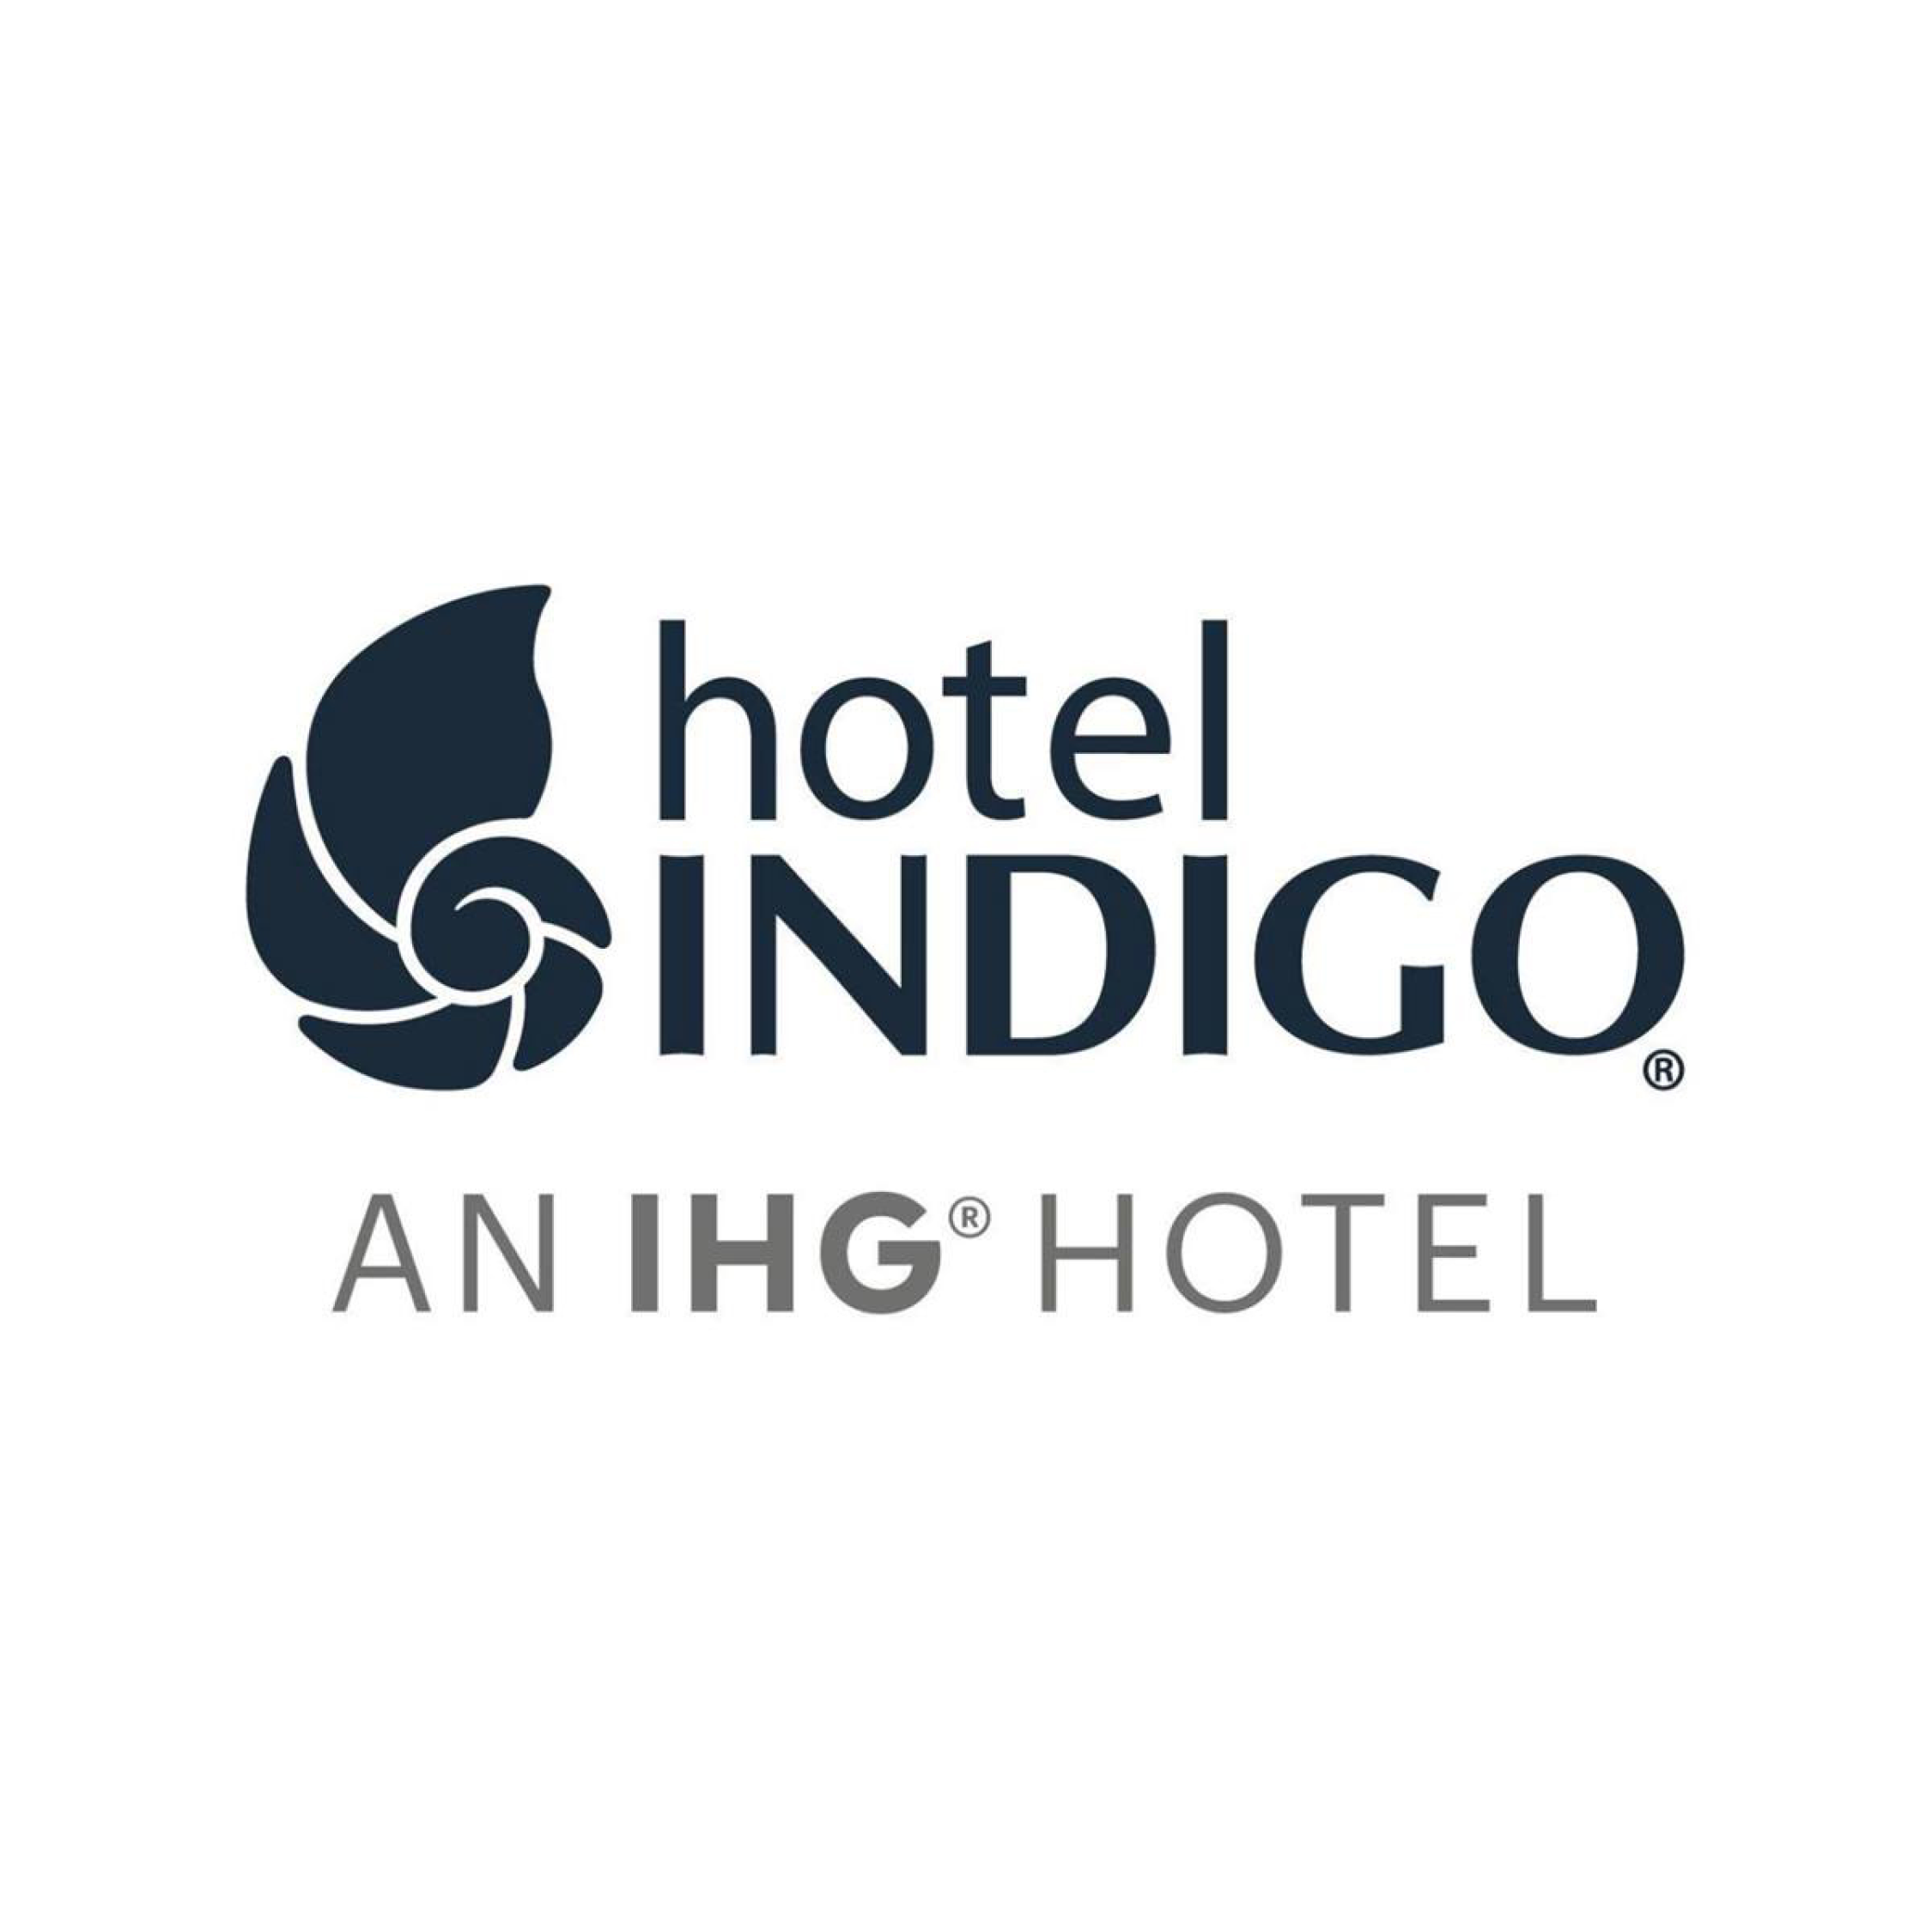 HotelIndigo-ProfilePicture-Apr19.png